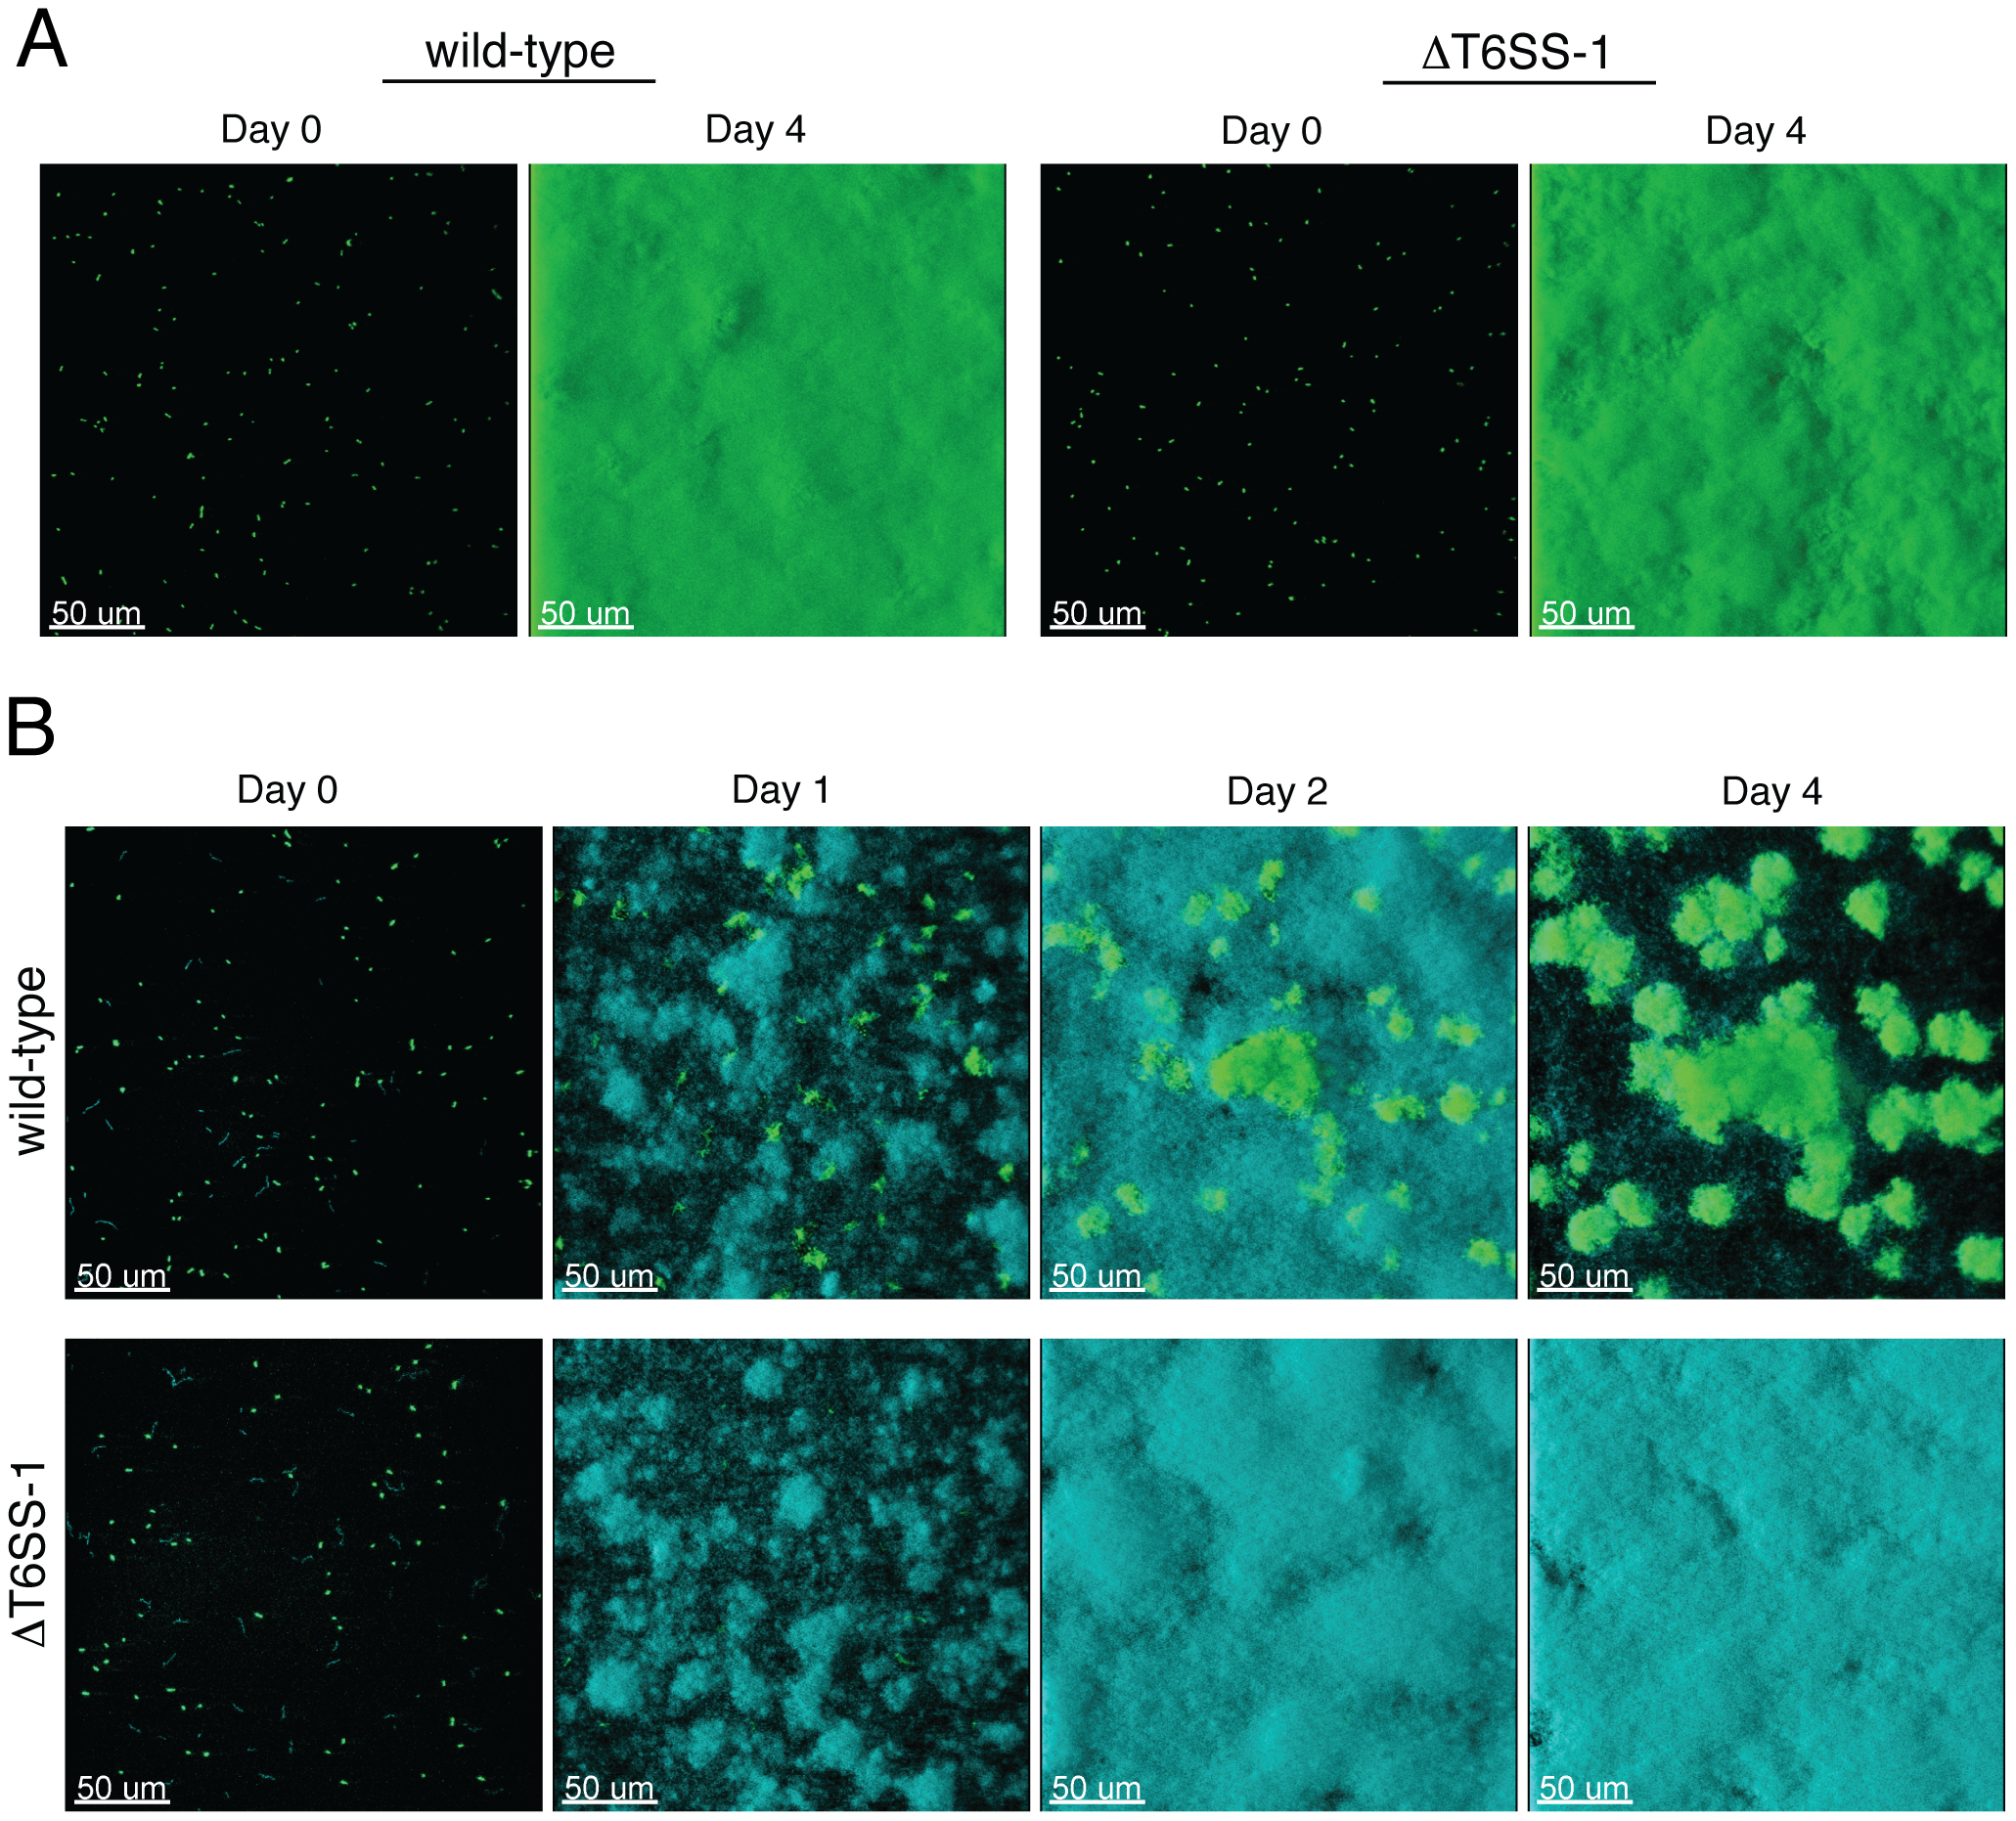 T6SS-1 is required for <i>B. thai</i> to persist in mixed biofilms with <i>P. putida</i>.